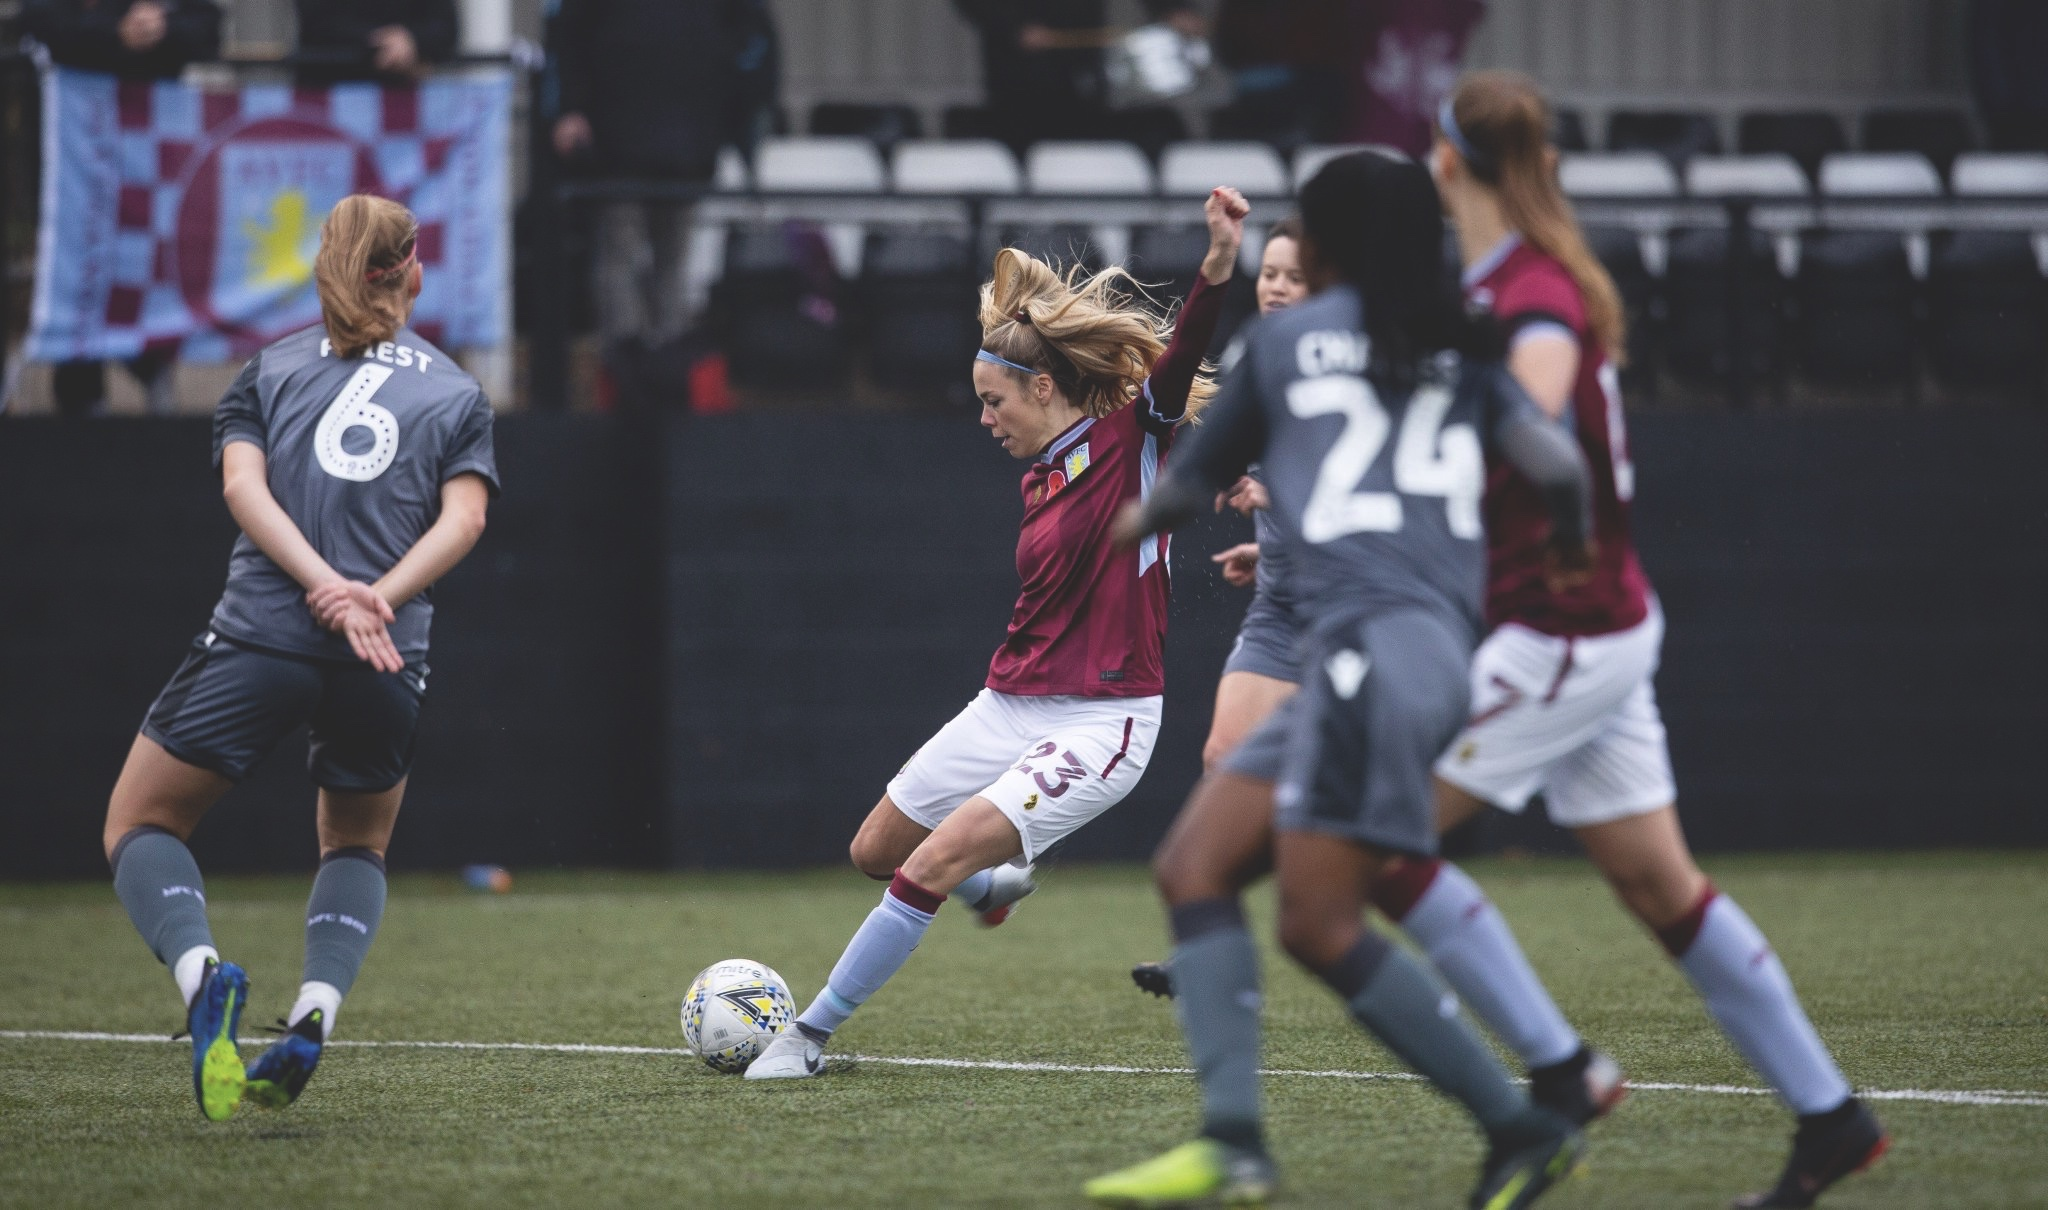 Nadine Hanssen takes aim for Aston Villa Ladies